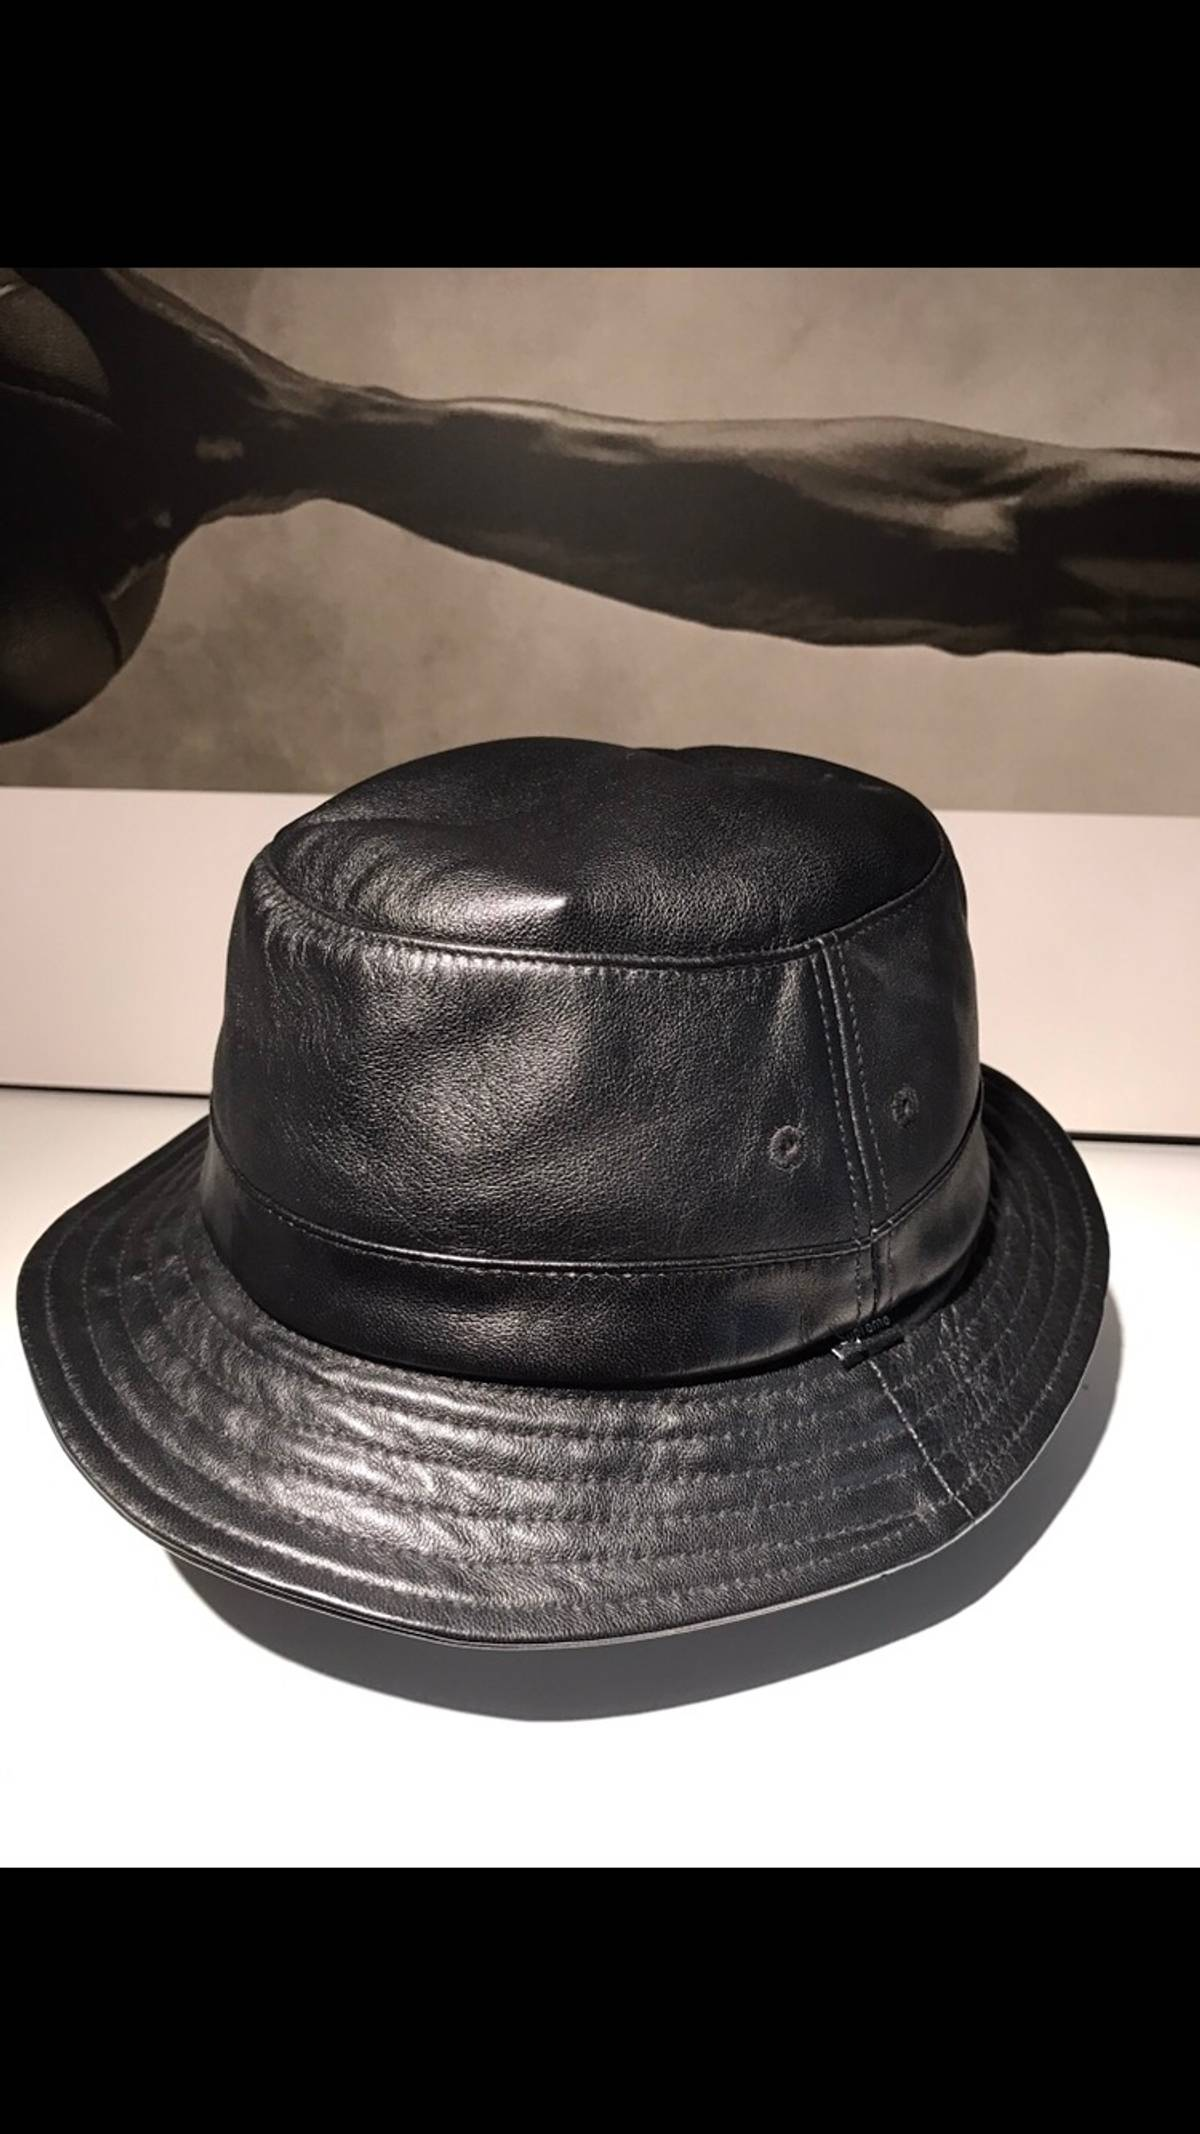 c87c116ba745df Supreme Supreme Leather Bucket Hat | Grailed